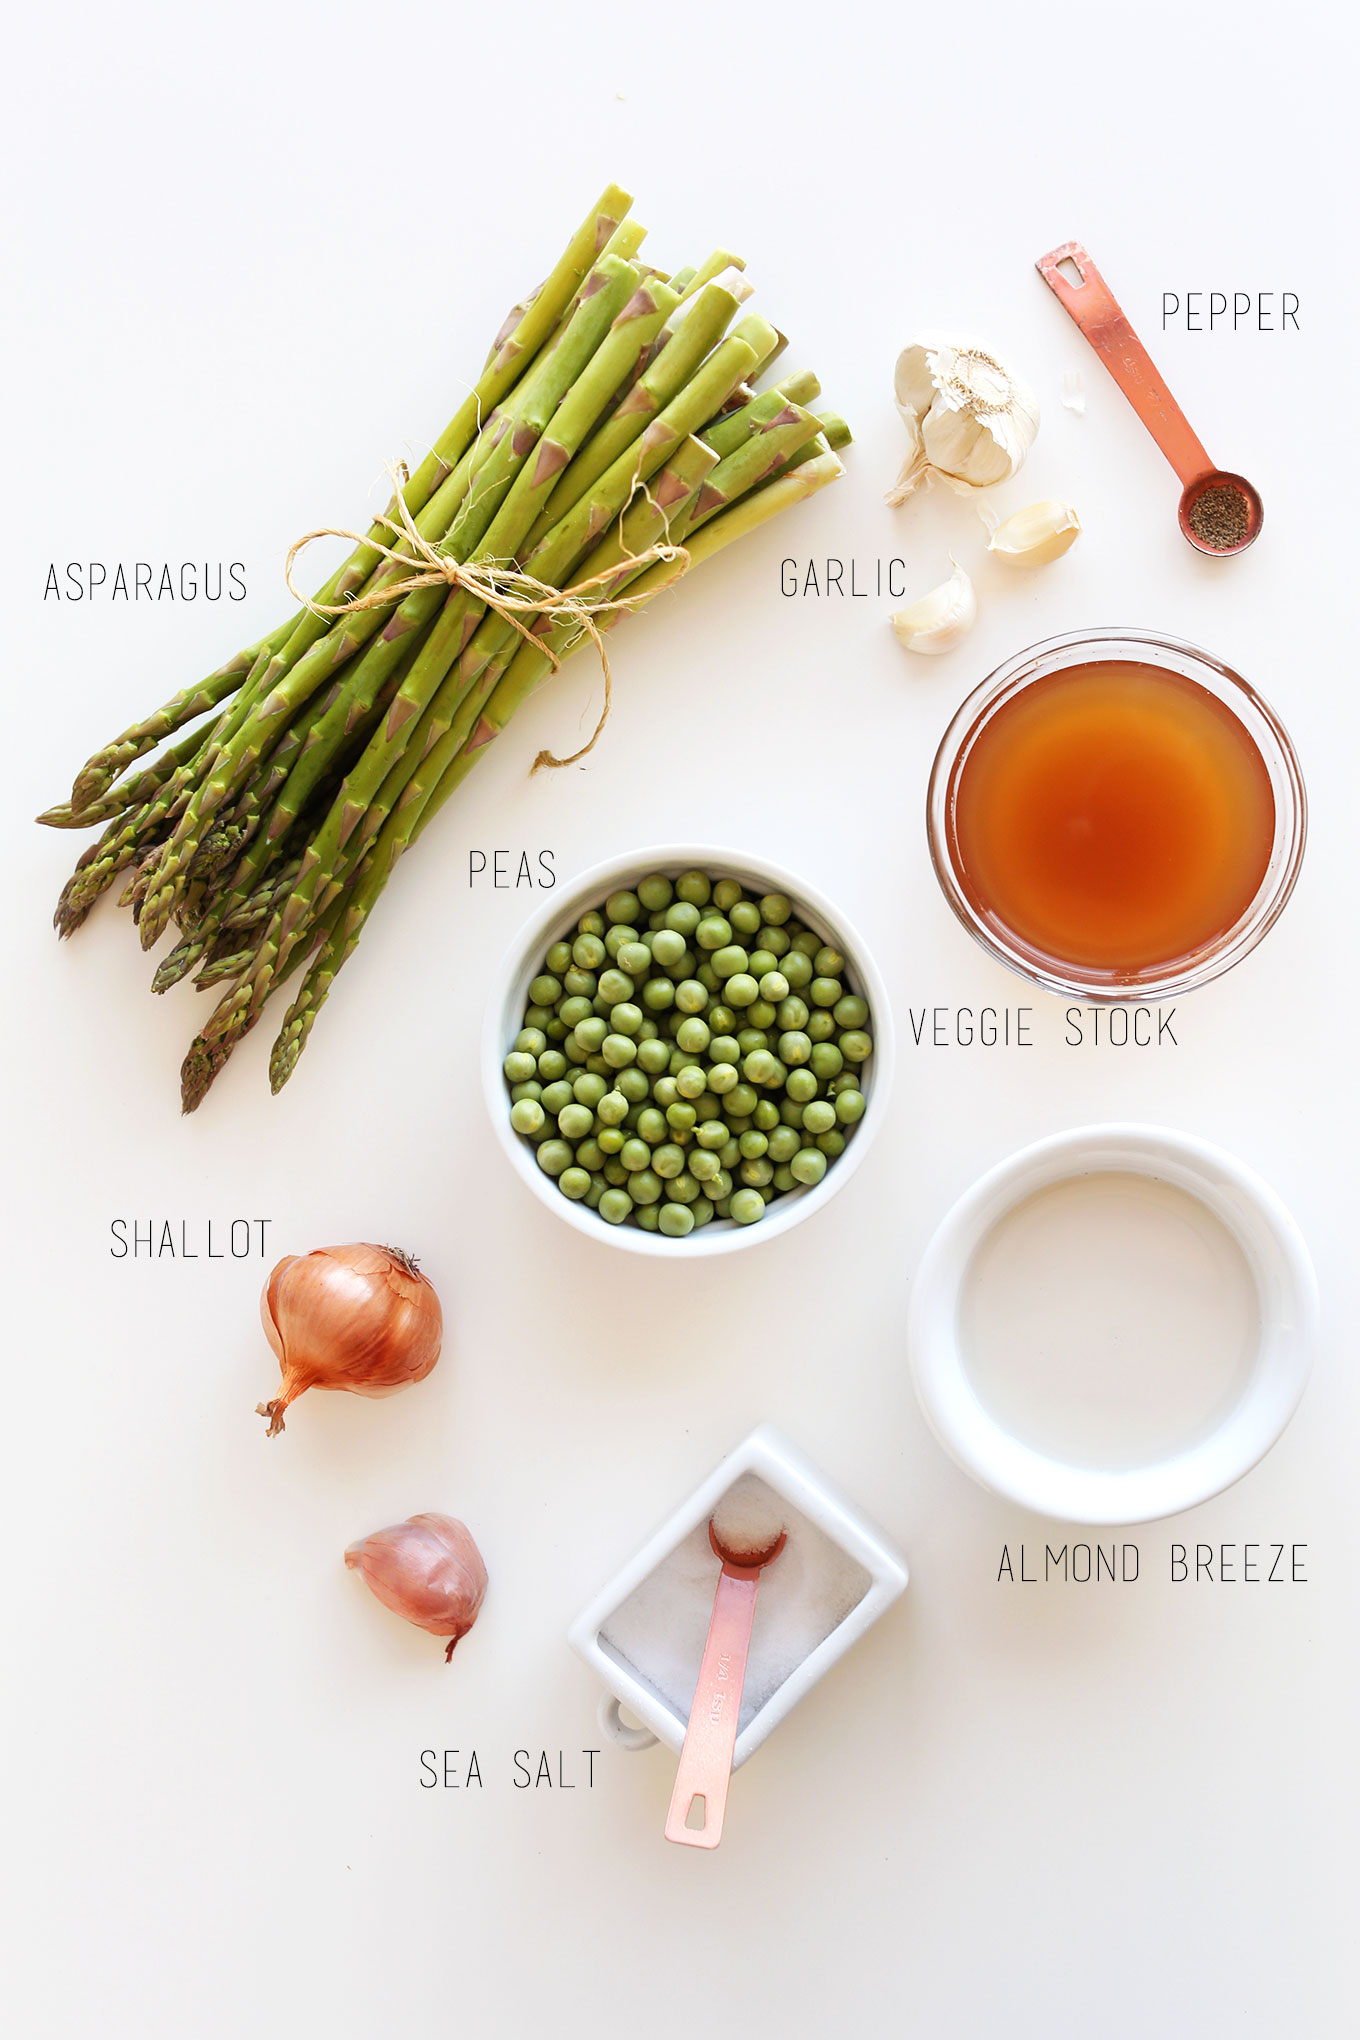 Ingredients for making our Creamy Asparagus Pea Soup recipe